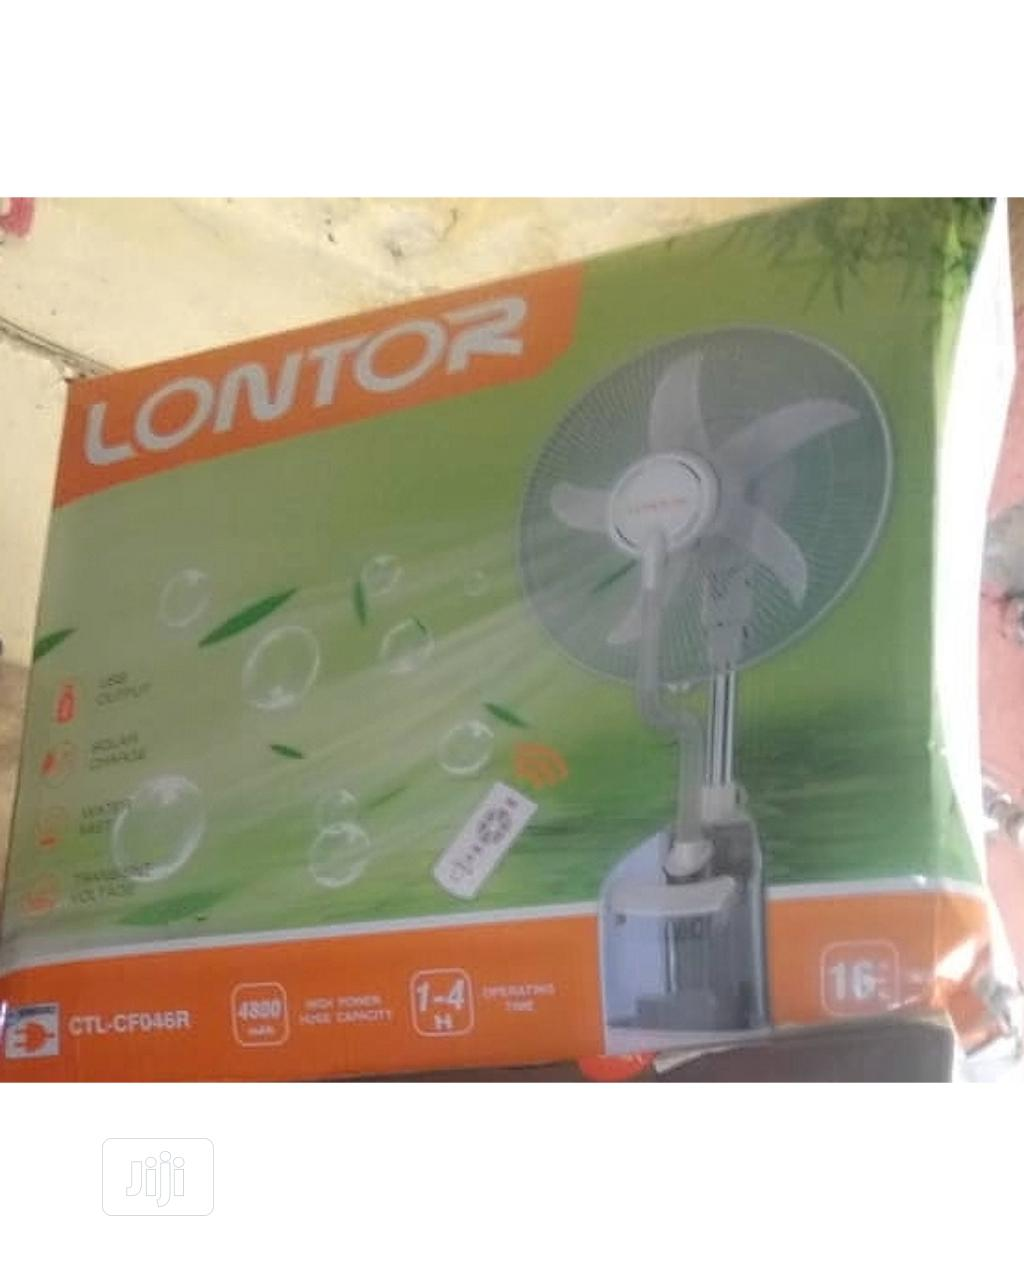 Lontor Rechargeable Mist Fan